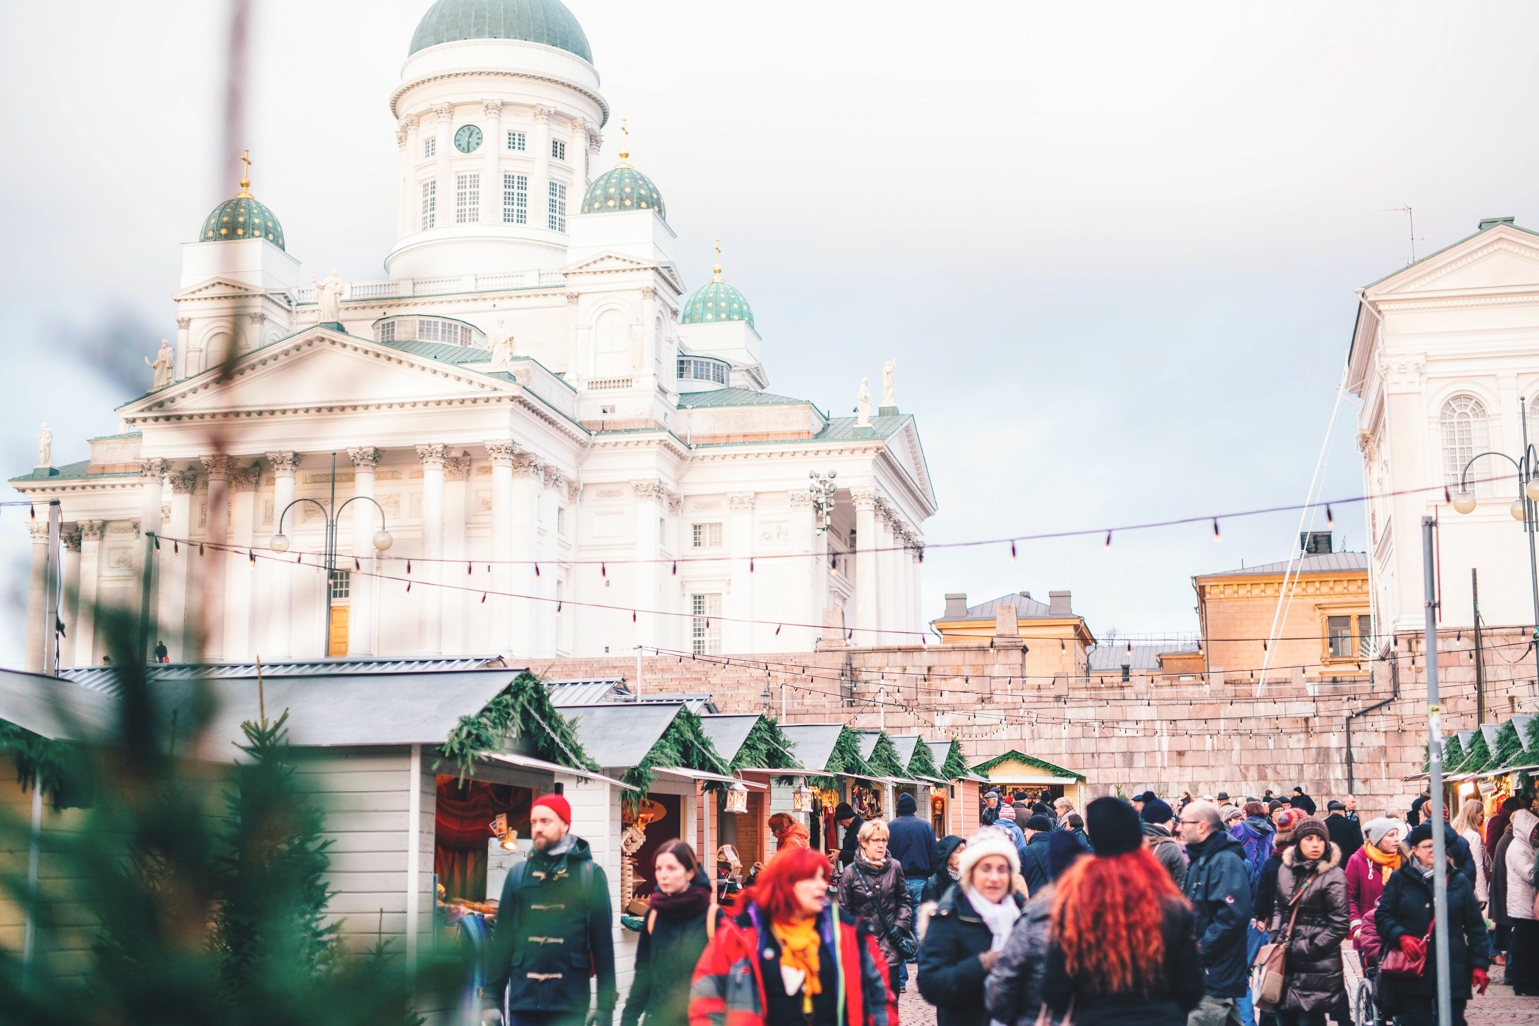 Finland Christmas Market 2019.Best Christmas Markets In Helsinki With Exciting